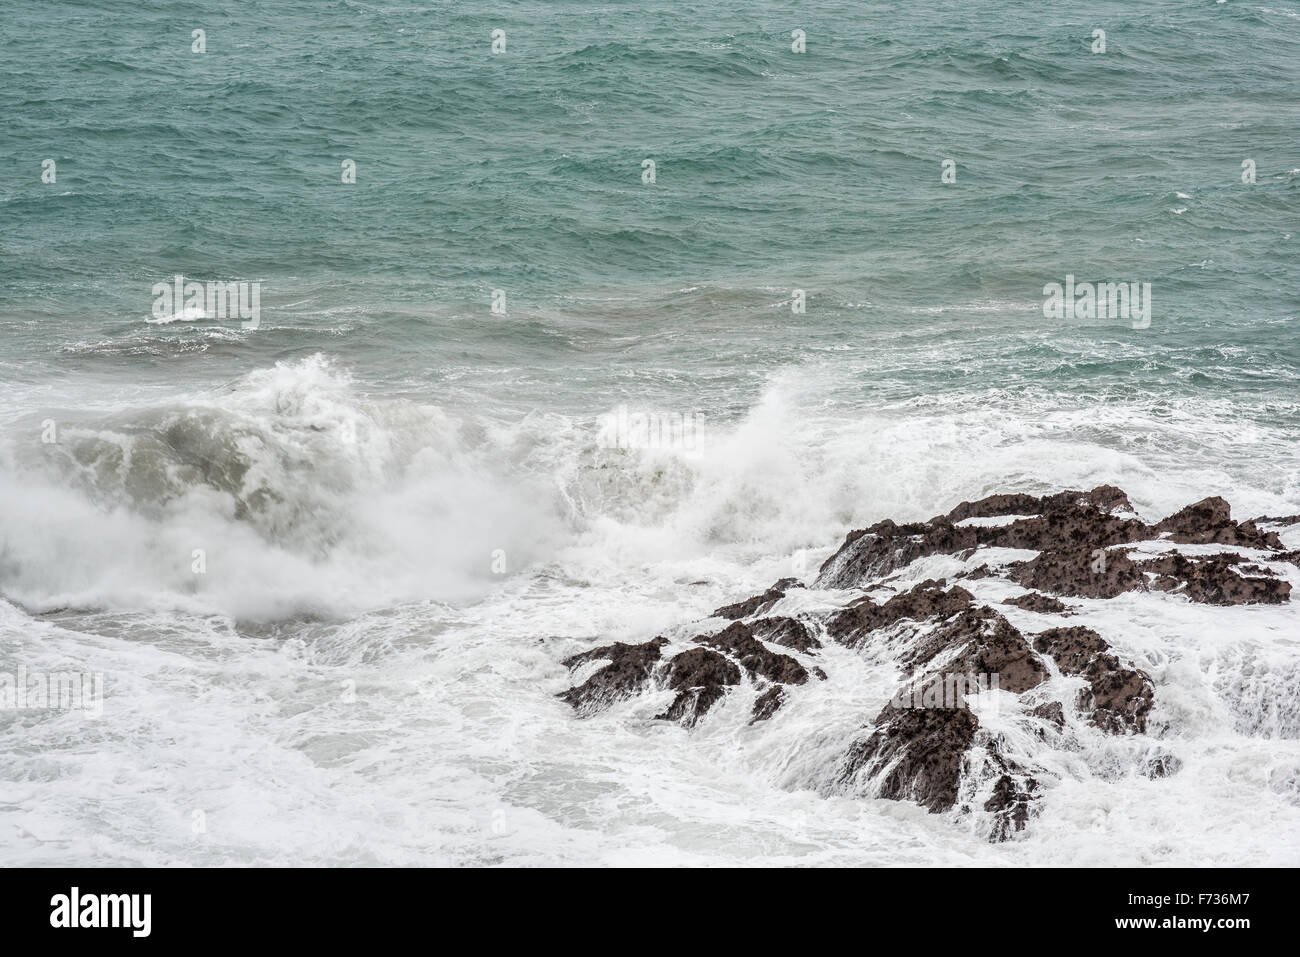 Spray bounces off rocks along the shoreline at Newquay, Cornwall, England. - Stock Image